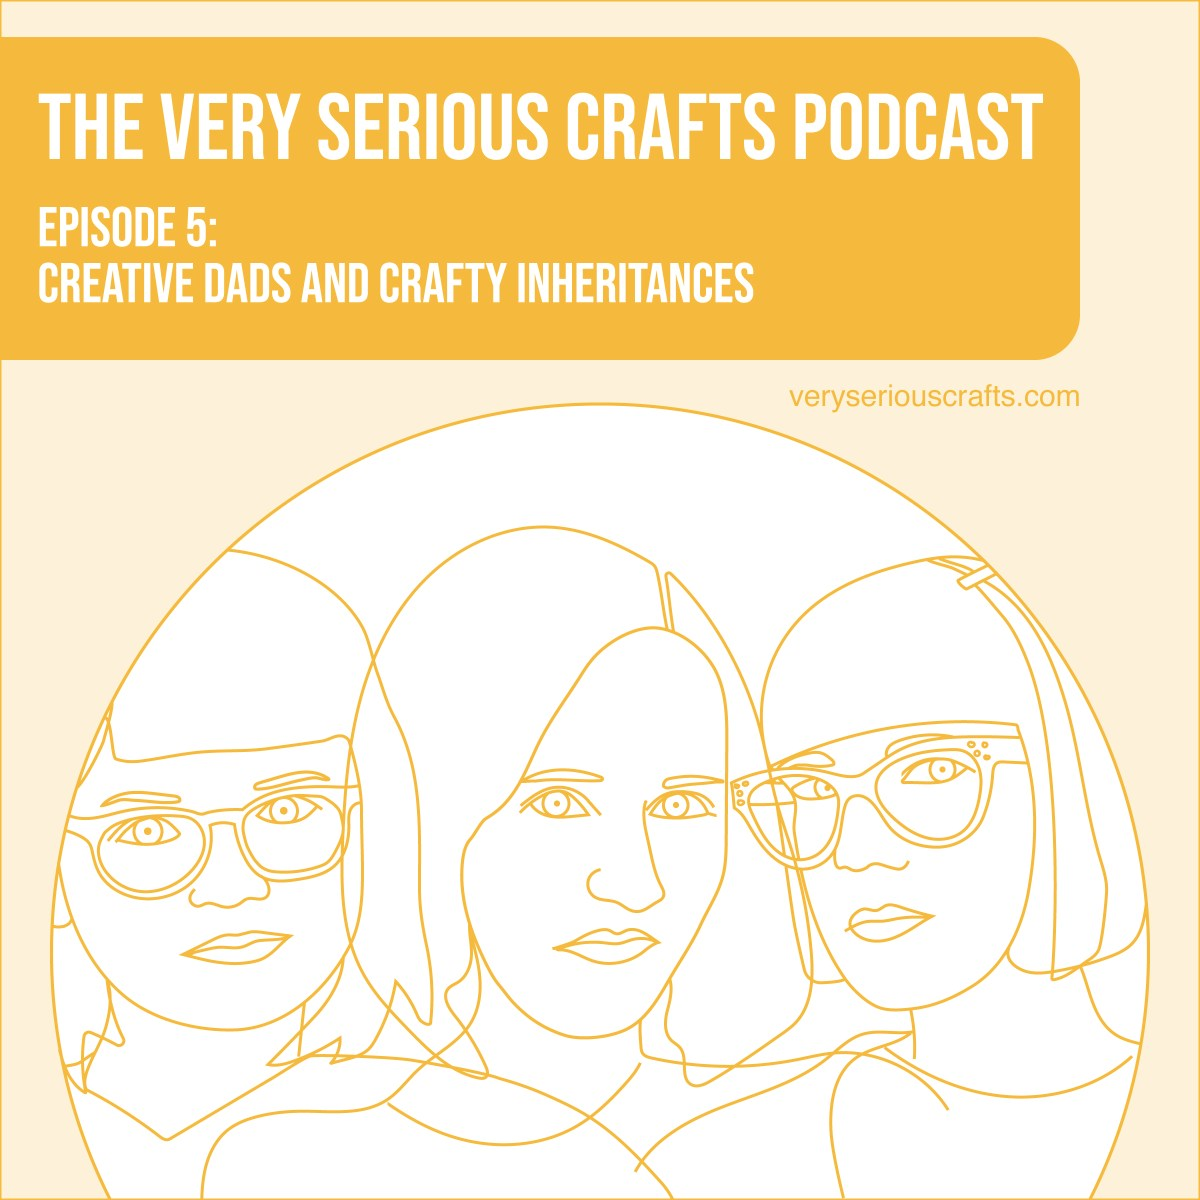 The Very Serious Crafts Podcast, Season 1: Episode 5 – Creative Dads and Crafty Inheritances